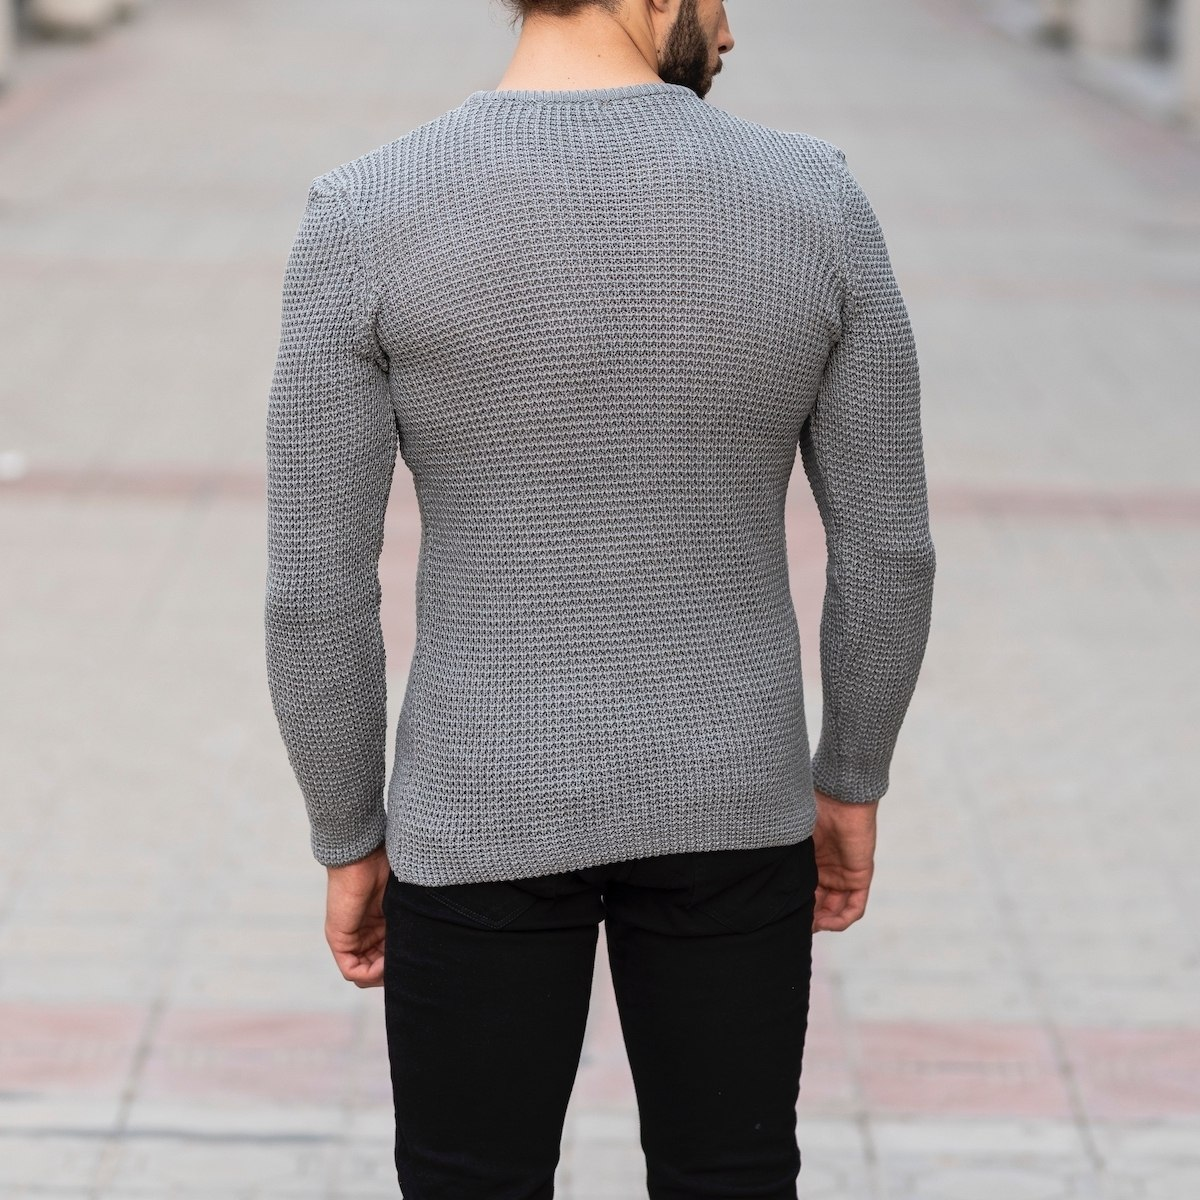 Knitted Pullover In Gray Mv Premium Brand - 4